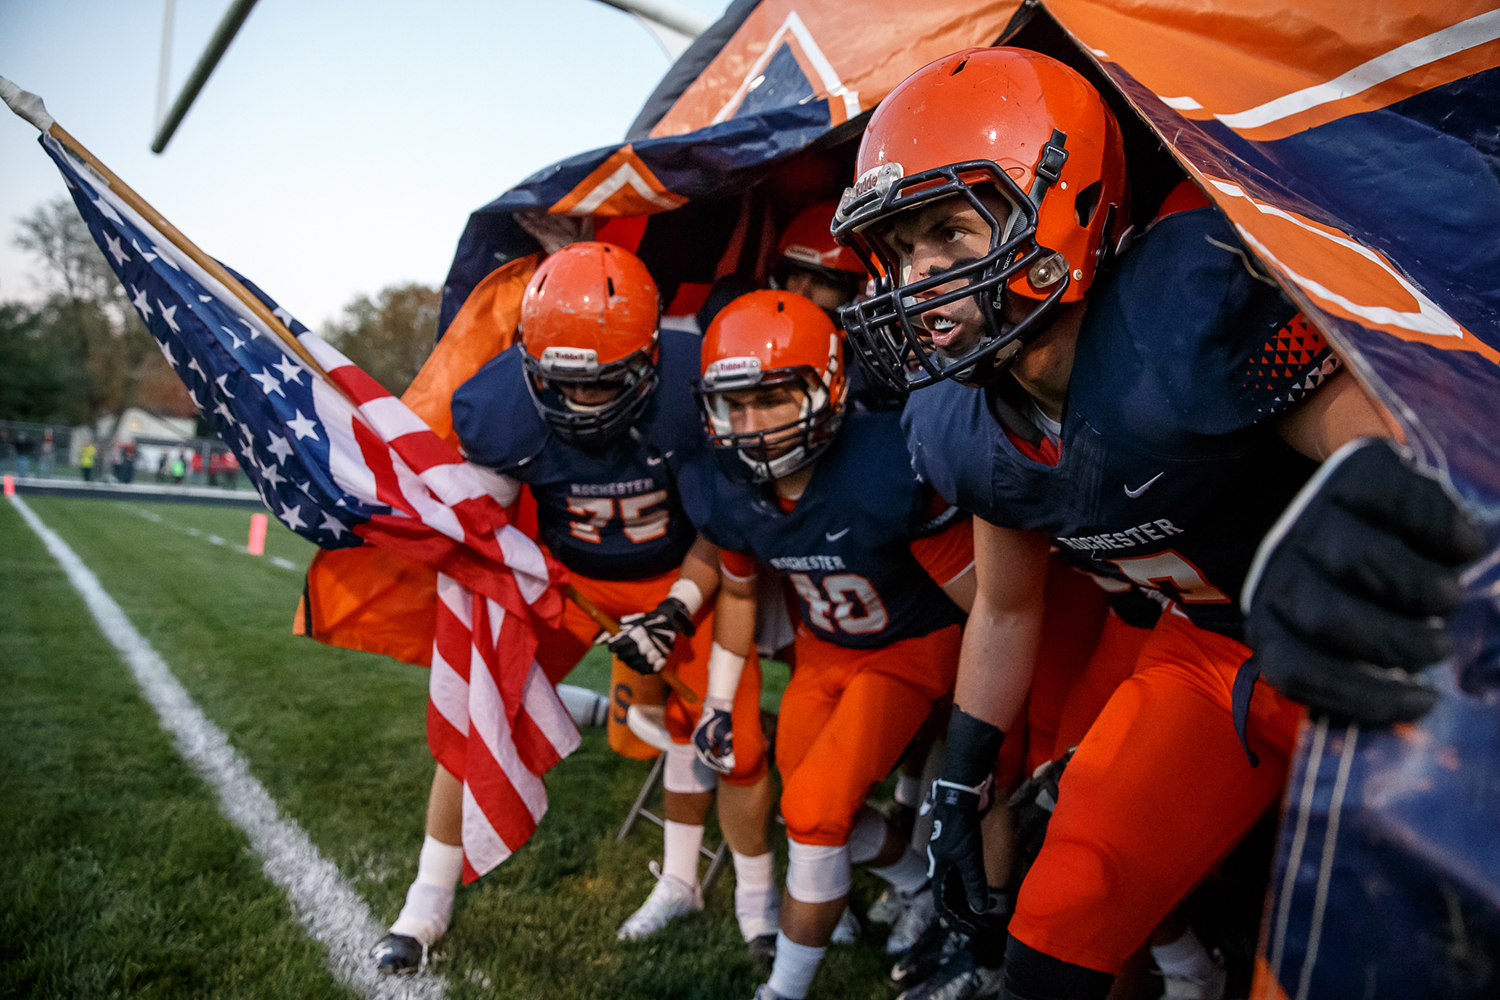 Rochester's Dallas Greer (7) prepares to head out on the field with his teammates to take on Mt. Zion during the first round of the Class 4A playoffs at Rocket Booster Field, Saturday, Nov. 1, 2014, in Rochester, Ill. Justin L. Fowler/The State Journal-Register